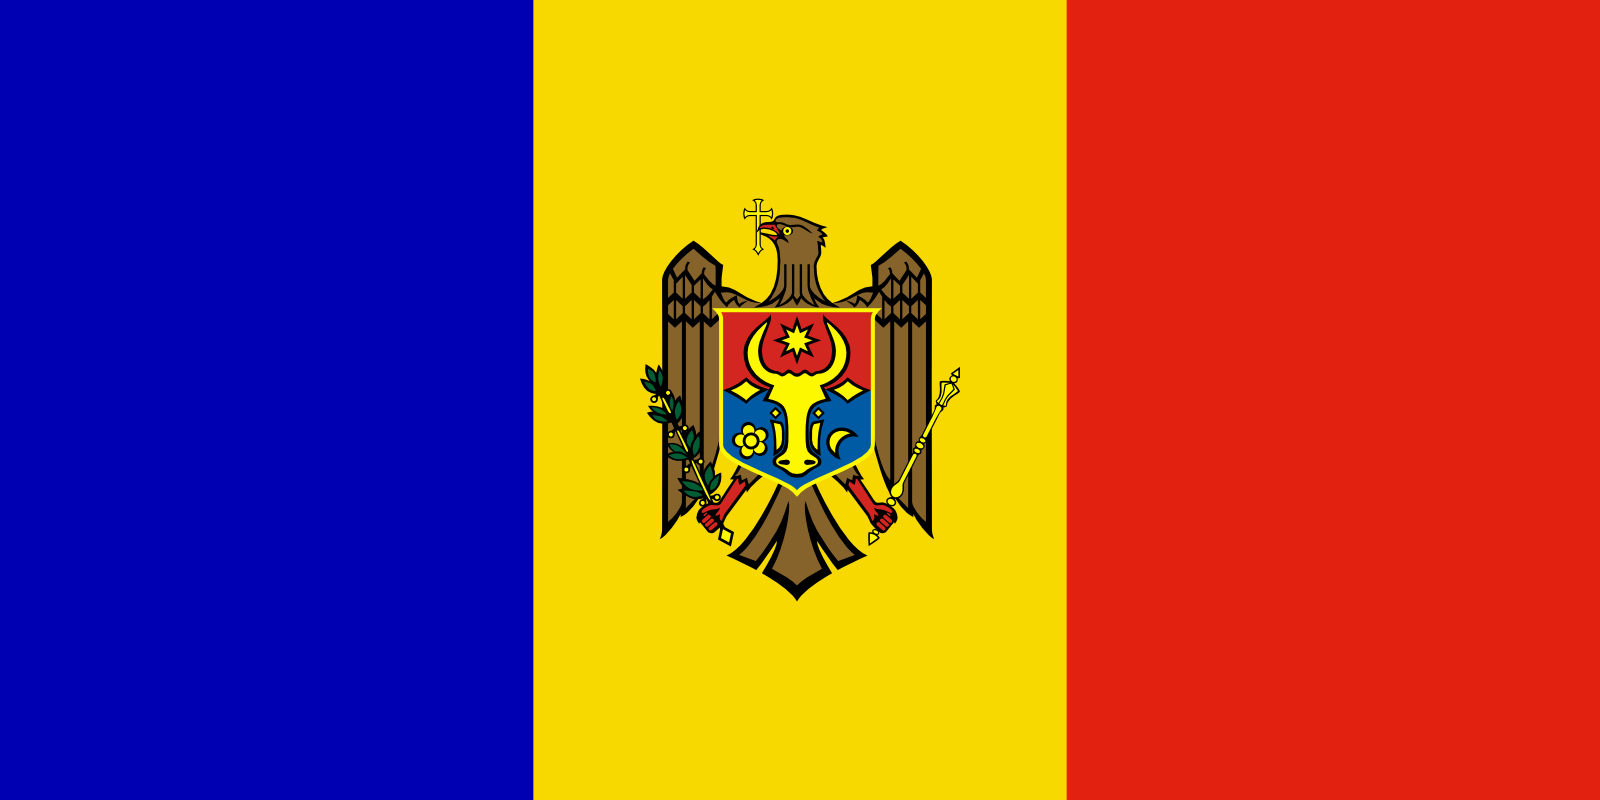 Commission proposes EUR 100 million in Macro-Financial Assistance to the Republic of Moldova